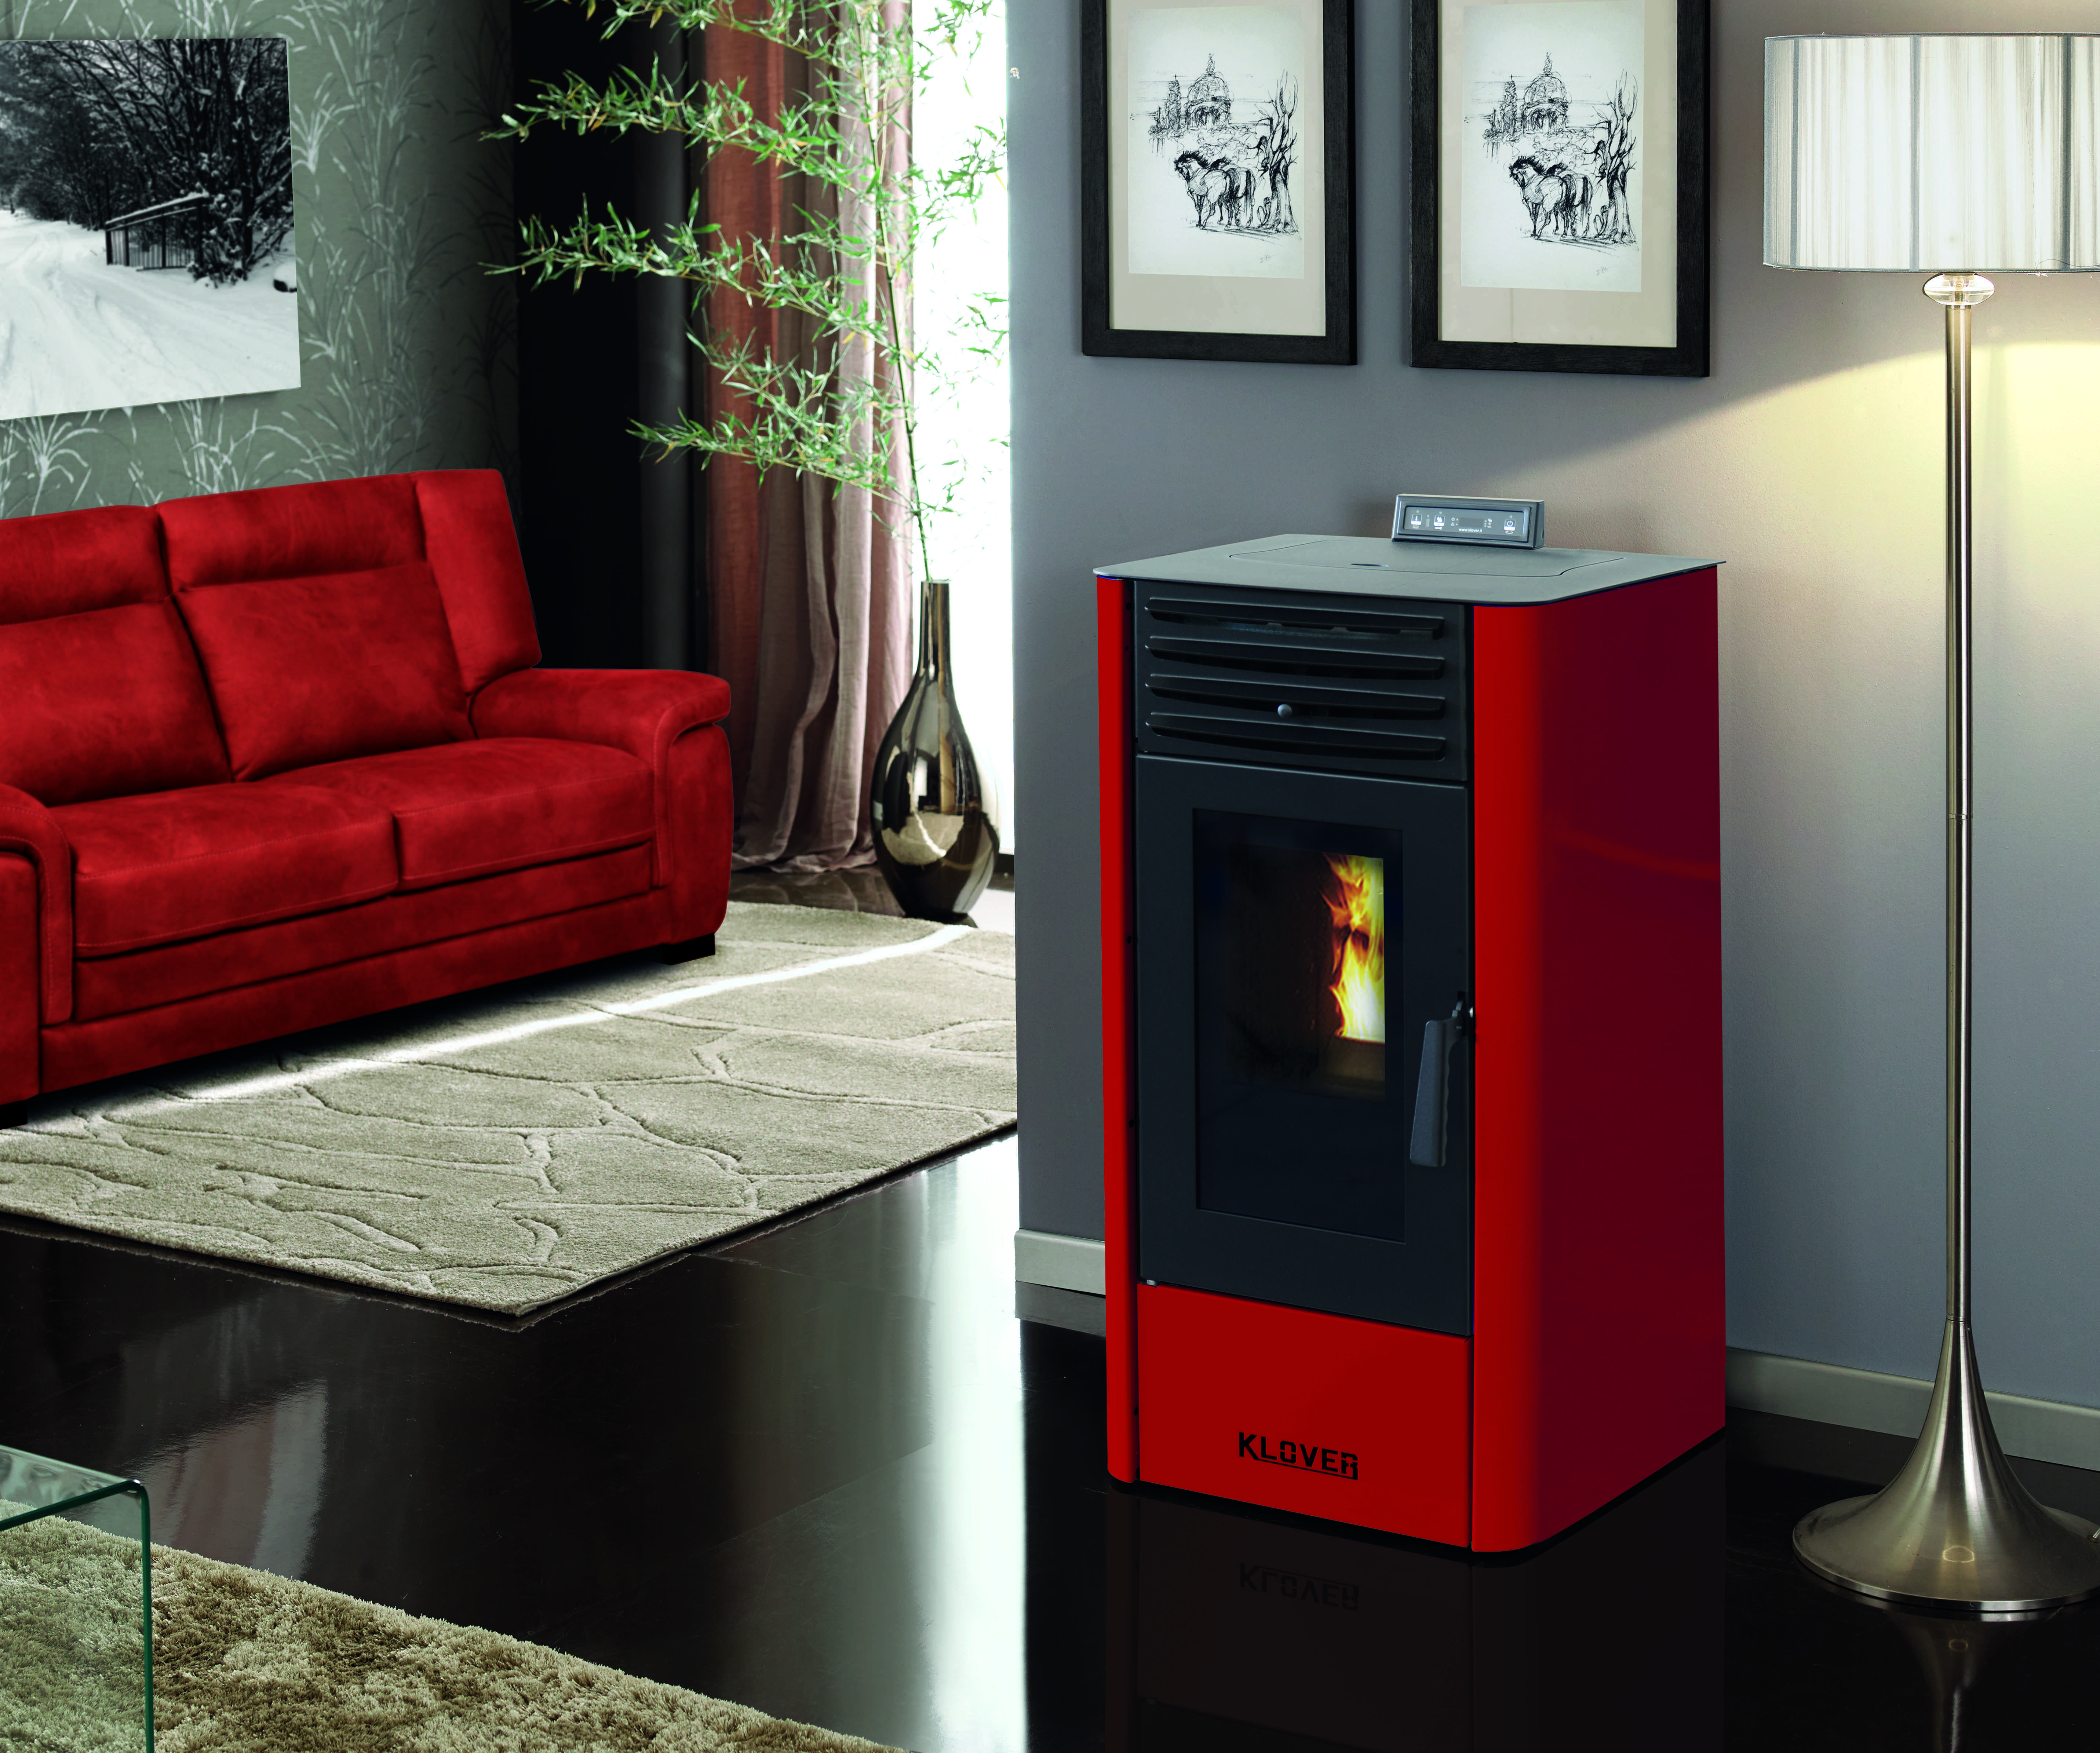 klover wood pellet boiler stoves which are designed to be